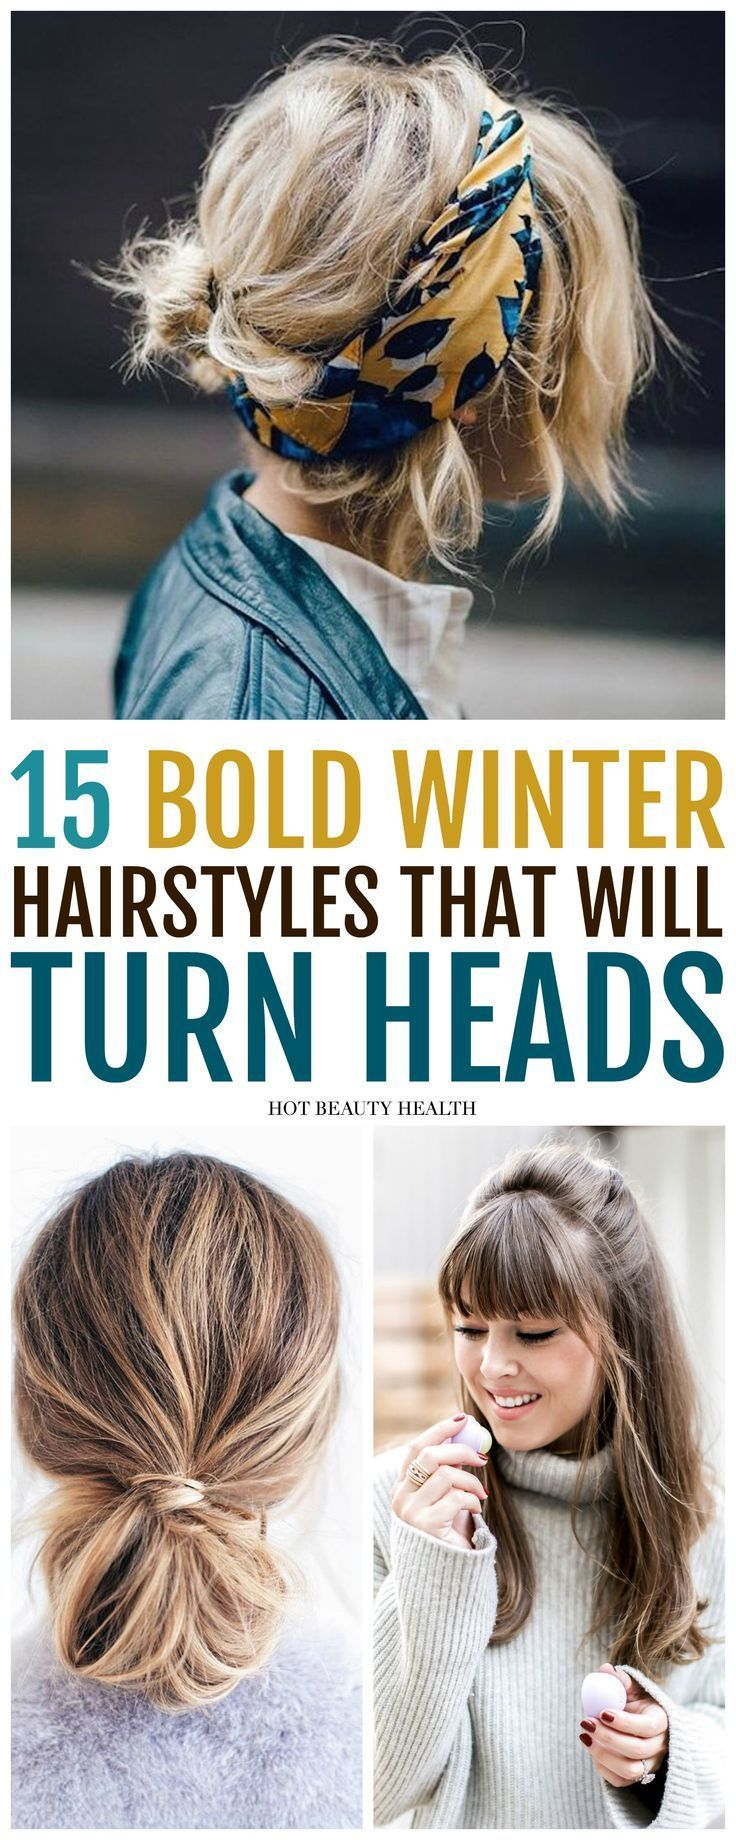 3471 best cute hairstyles and tutorials images on pinterest